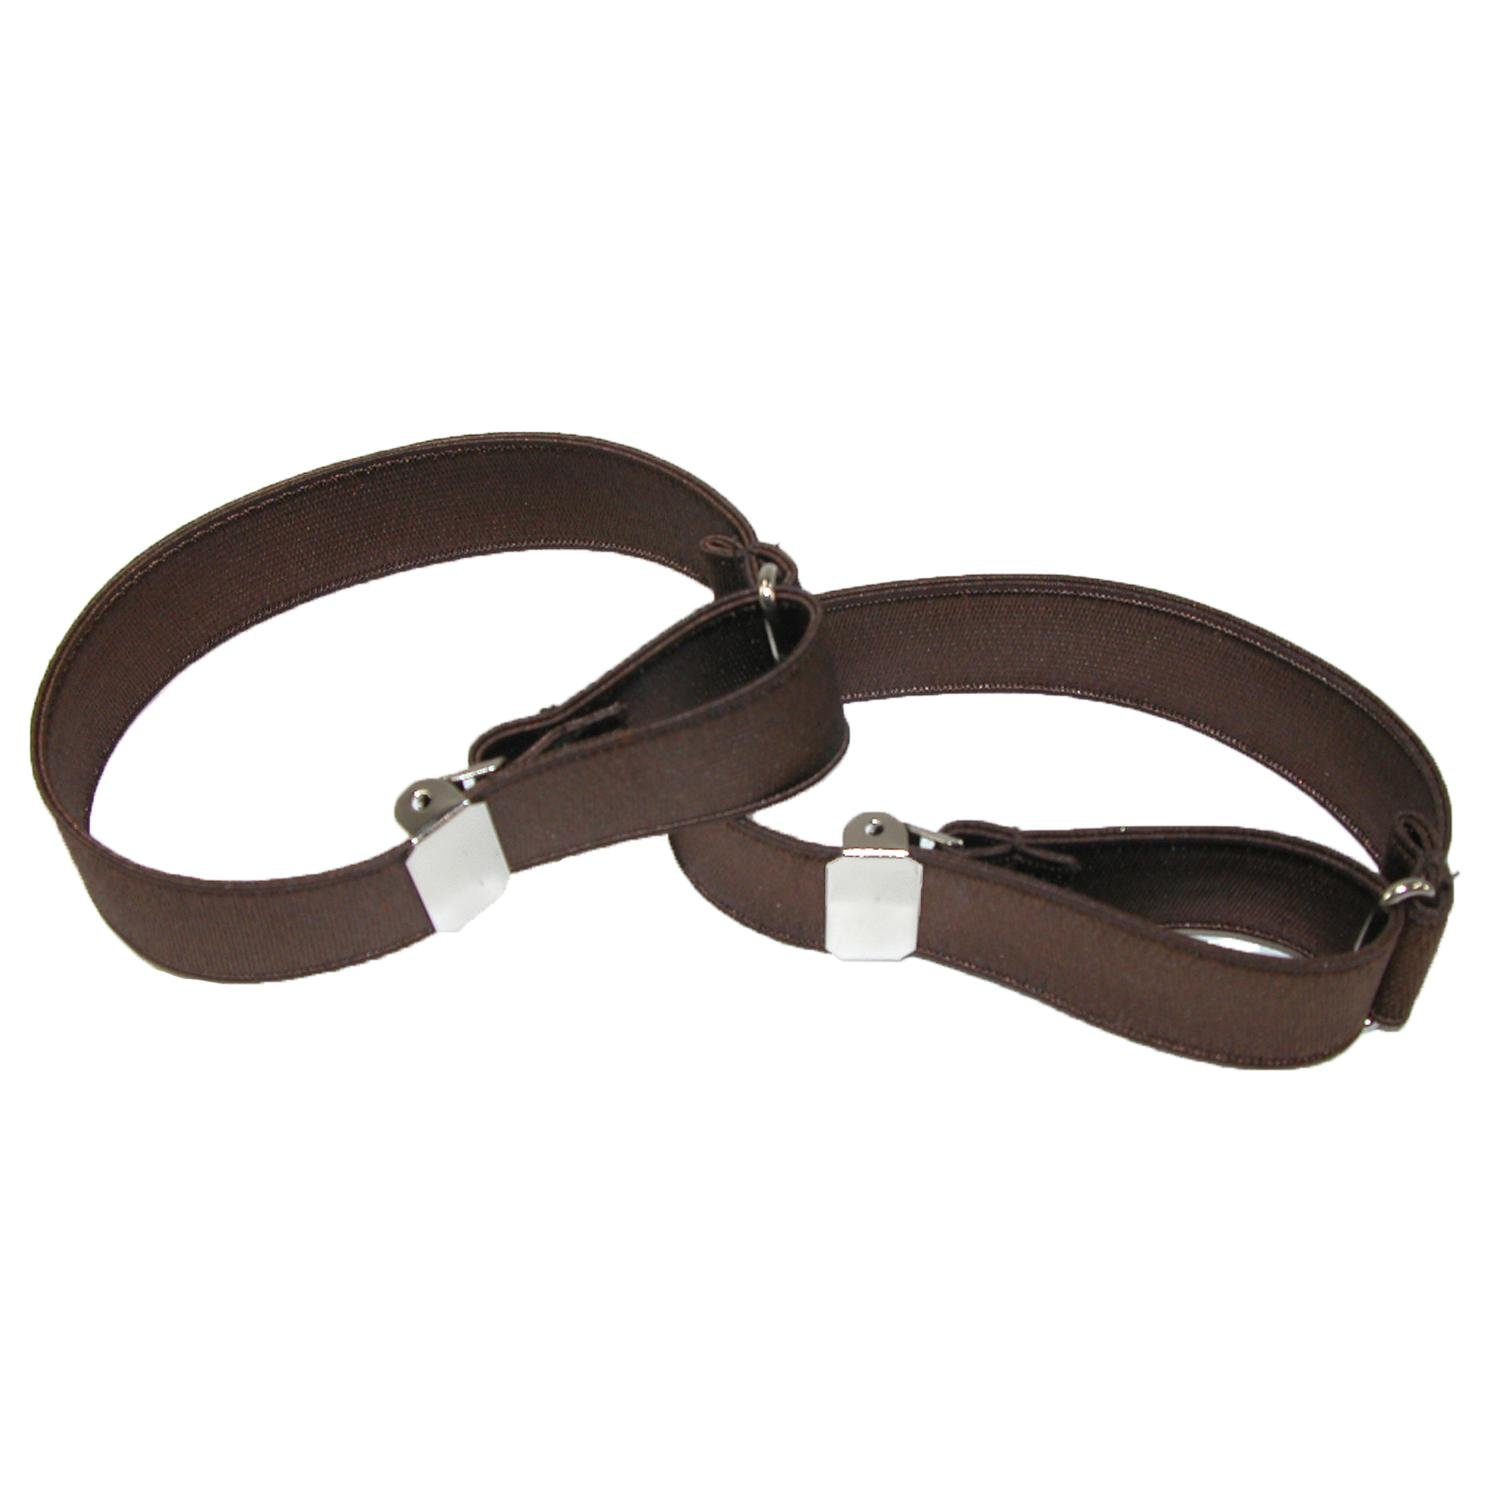 Vintage Shirts – Mens – Retro Shirts CTM Satin Elastic Solid Color Adjustable Armband Sleeve Garter $14.94 AT vintagedancer.com